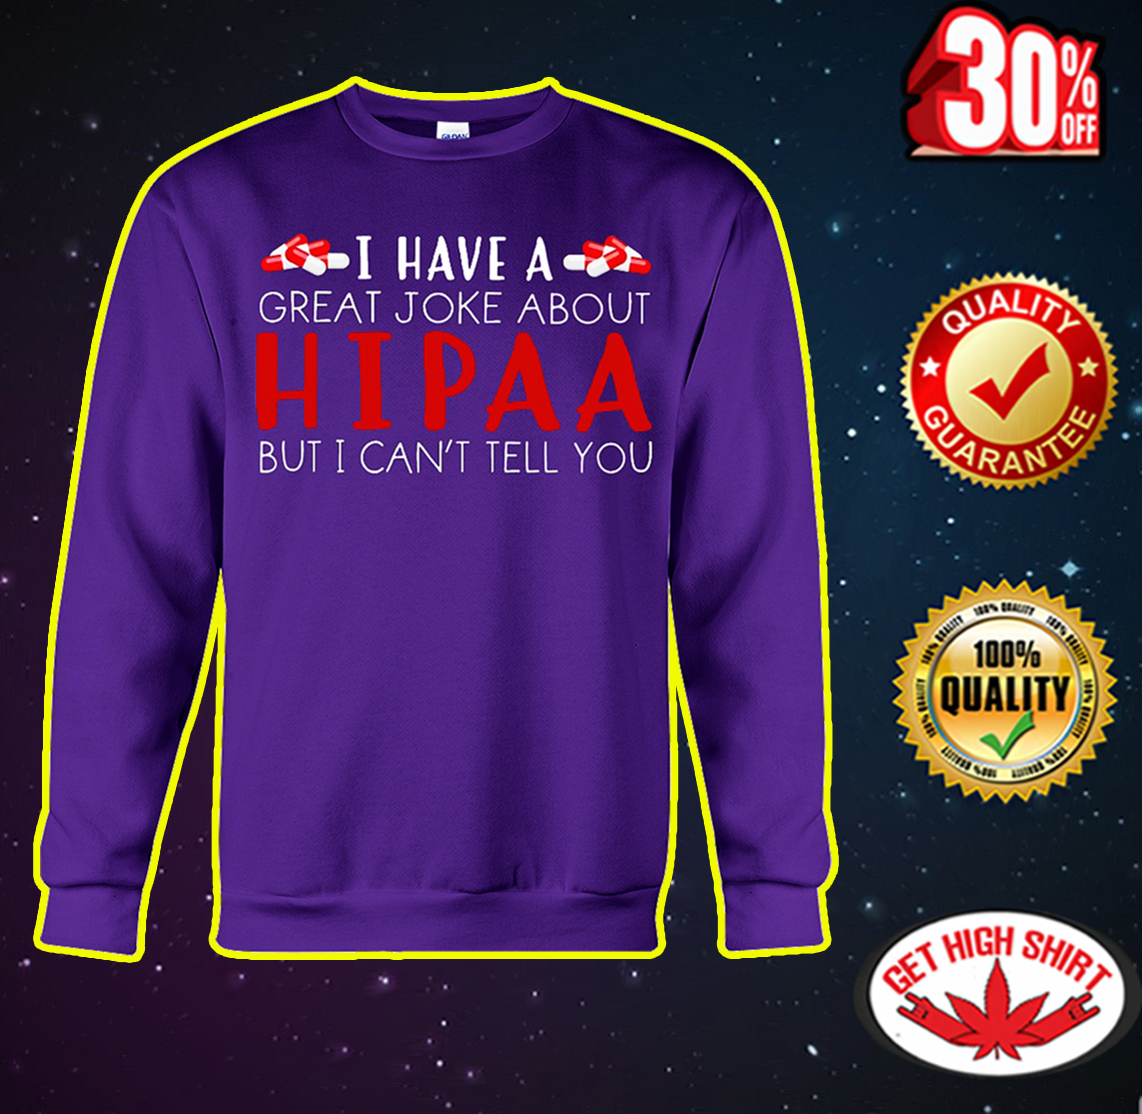 I have a great joke about hipaa but I can't tell you sweatshirt